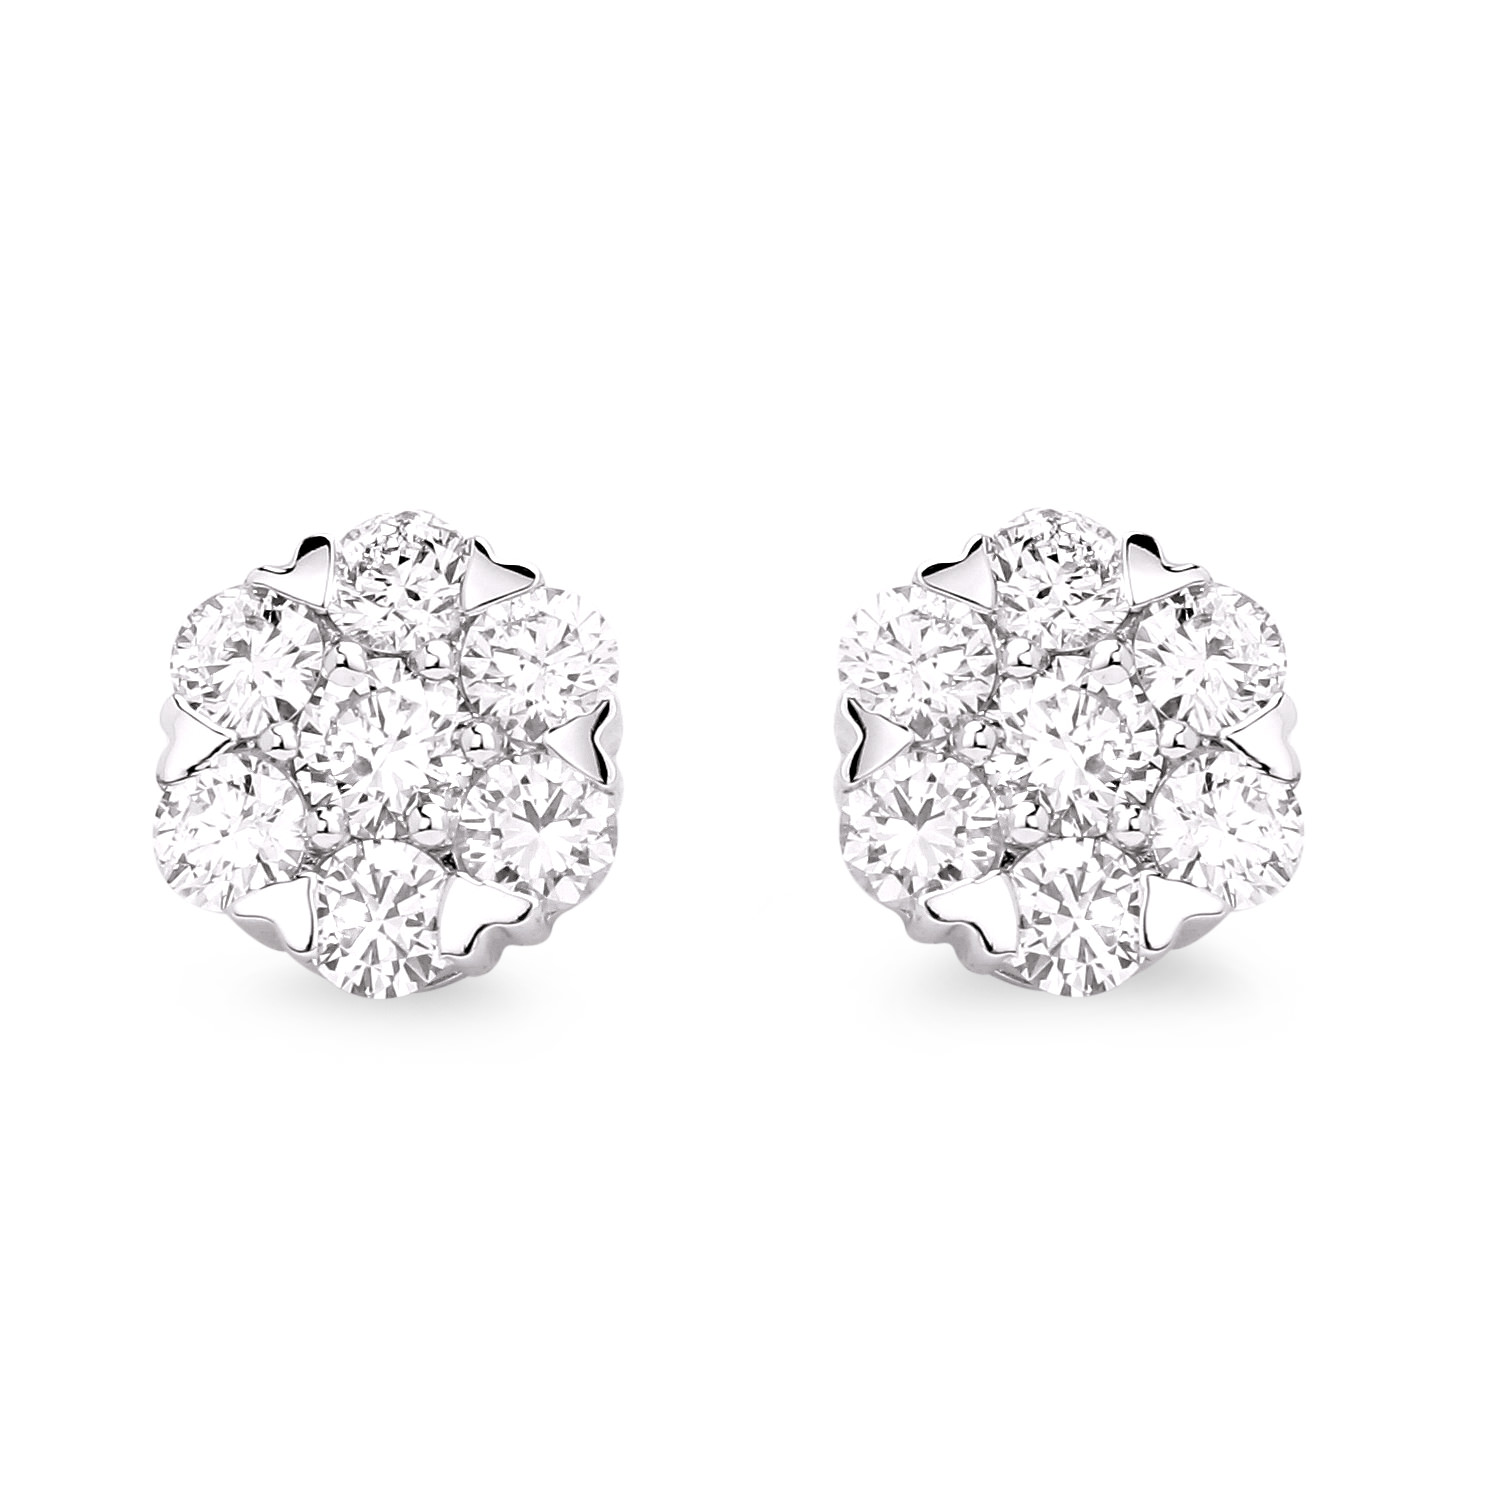 Diamond Stud Earrings SGE253 (Earrings)